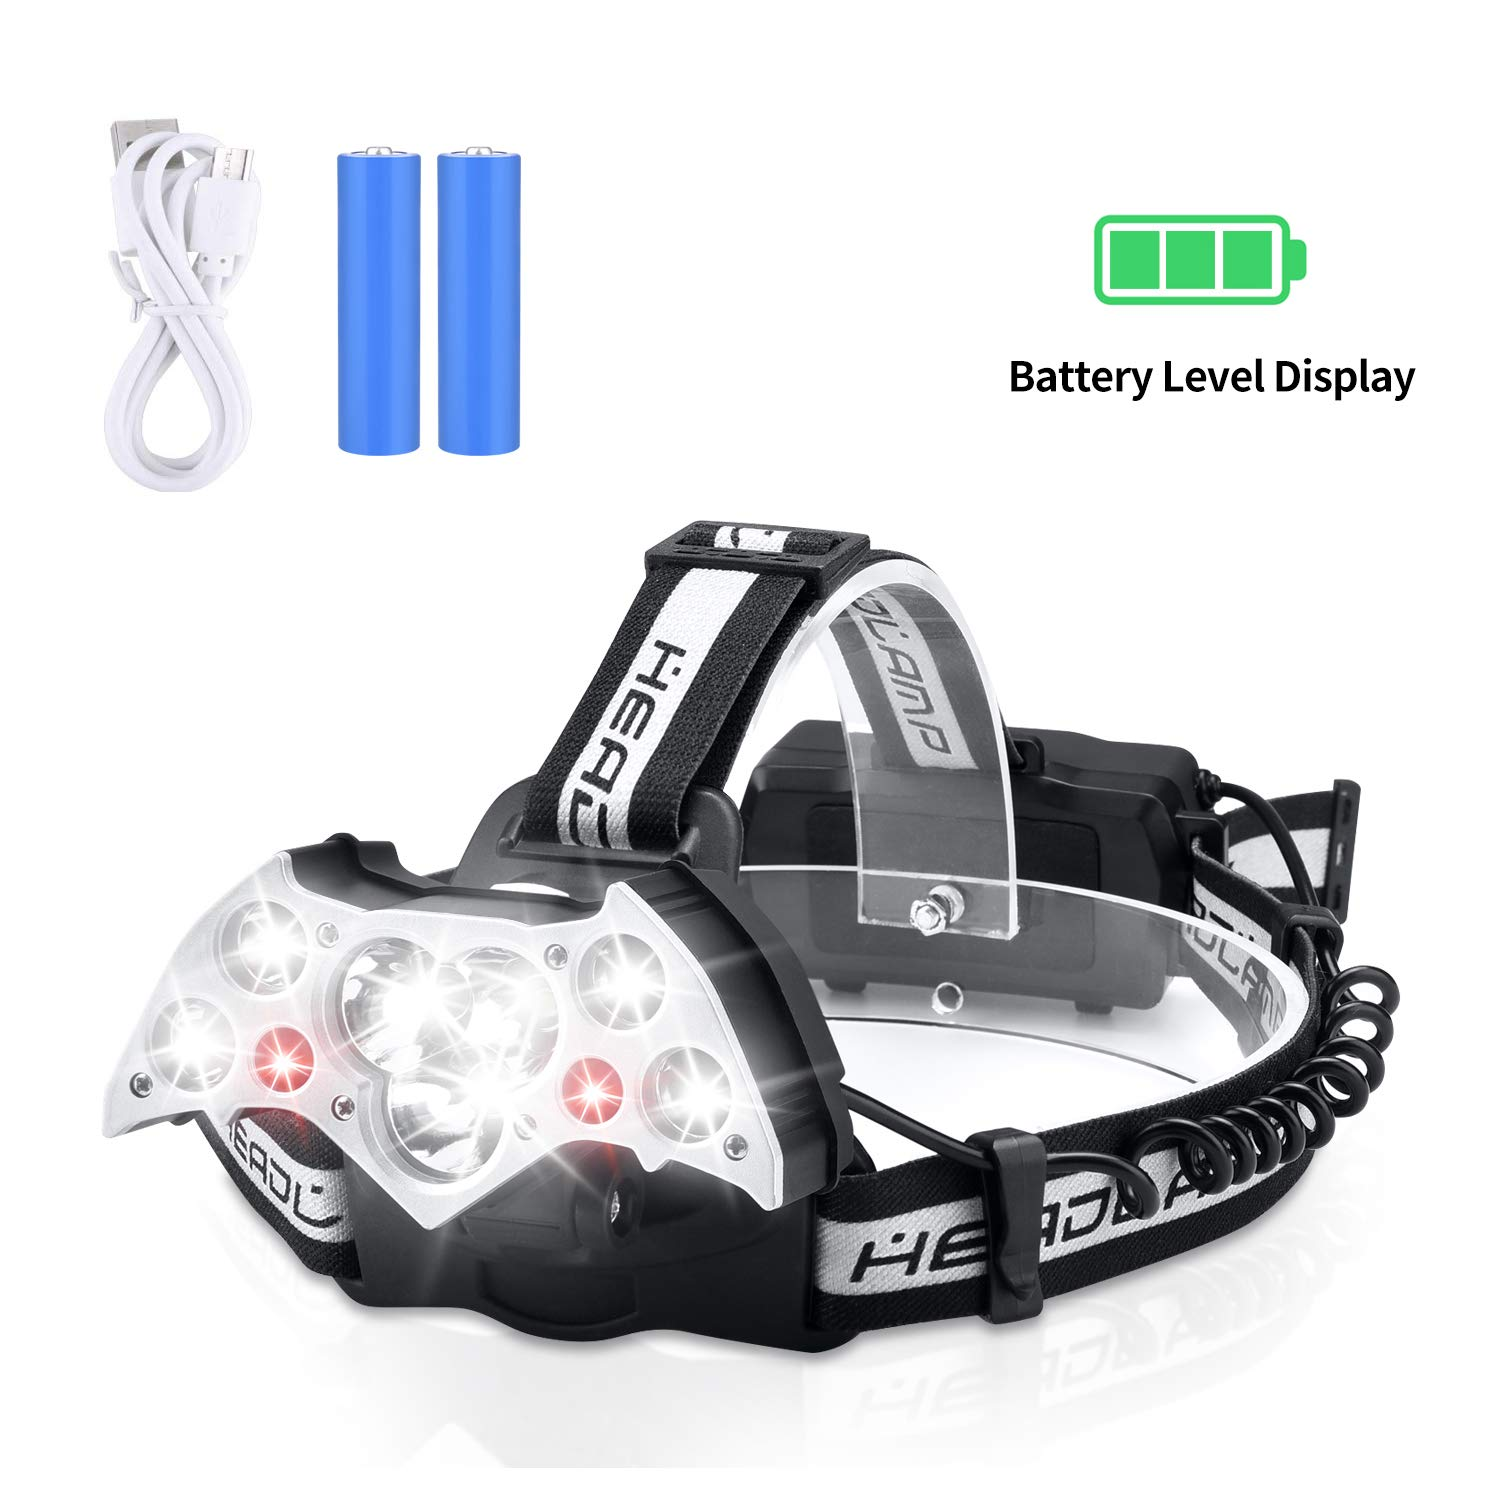 YCTEC 12000 Lumen Bright 9 LED Headlamp Flashlight with White Red Lights, Battery Level Display, Waterproof USB Rechargeable Headlamp with 6 Lighting Modes for Running Camping Cycling